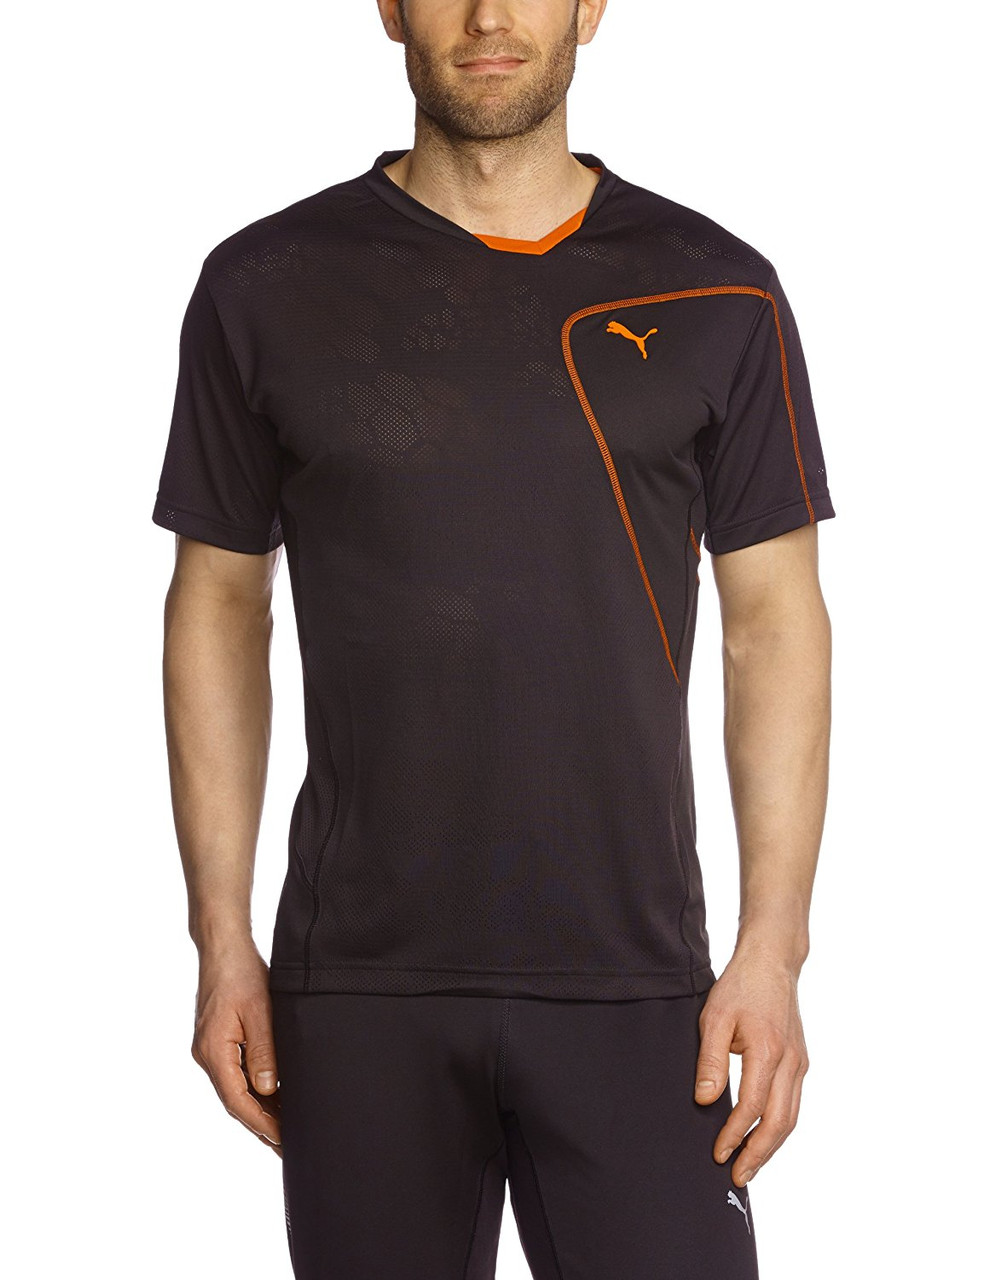 Футболка спортивная, мужская PUMA CT Tech Burn Out Men's Short-Sleeved Sports Shirt 509796 01 пума